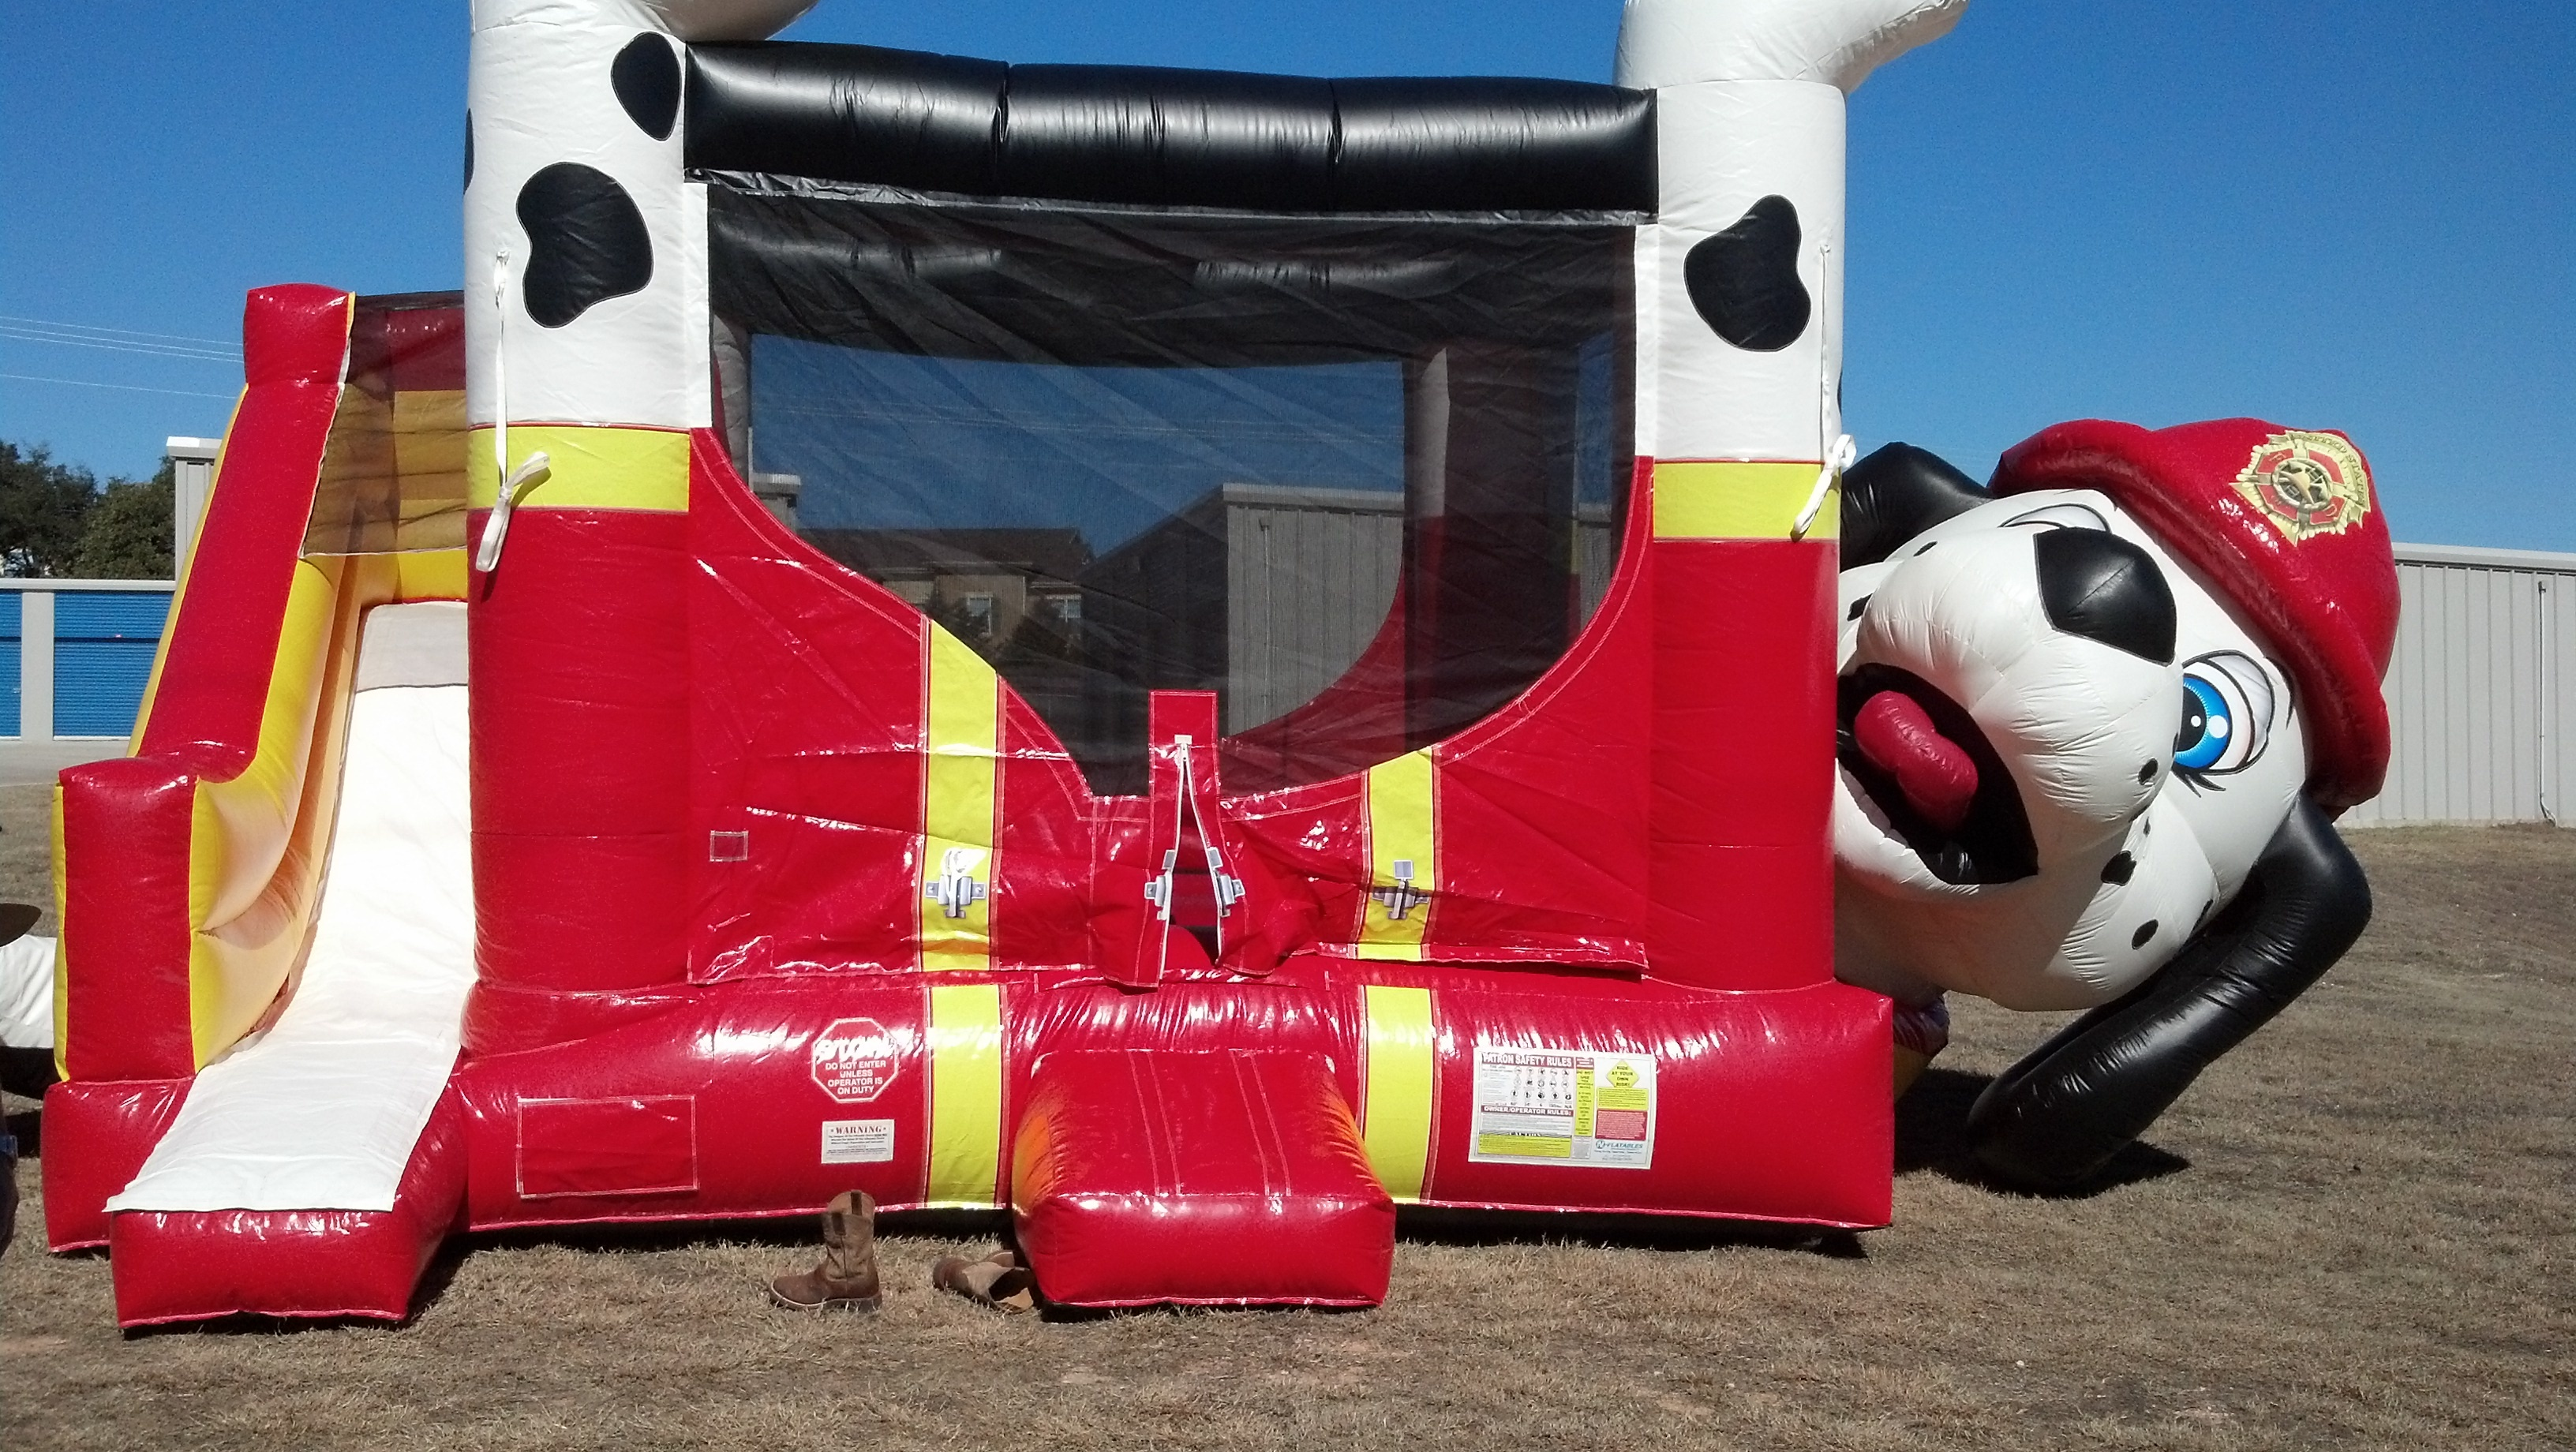 Incredible Fire Dog Bounce House Party Package Home Interior And Landscaping Spoatsignezvosmurscom